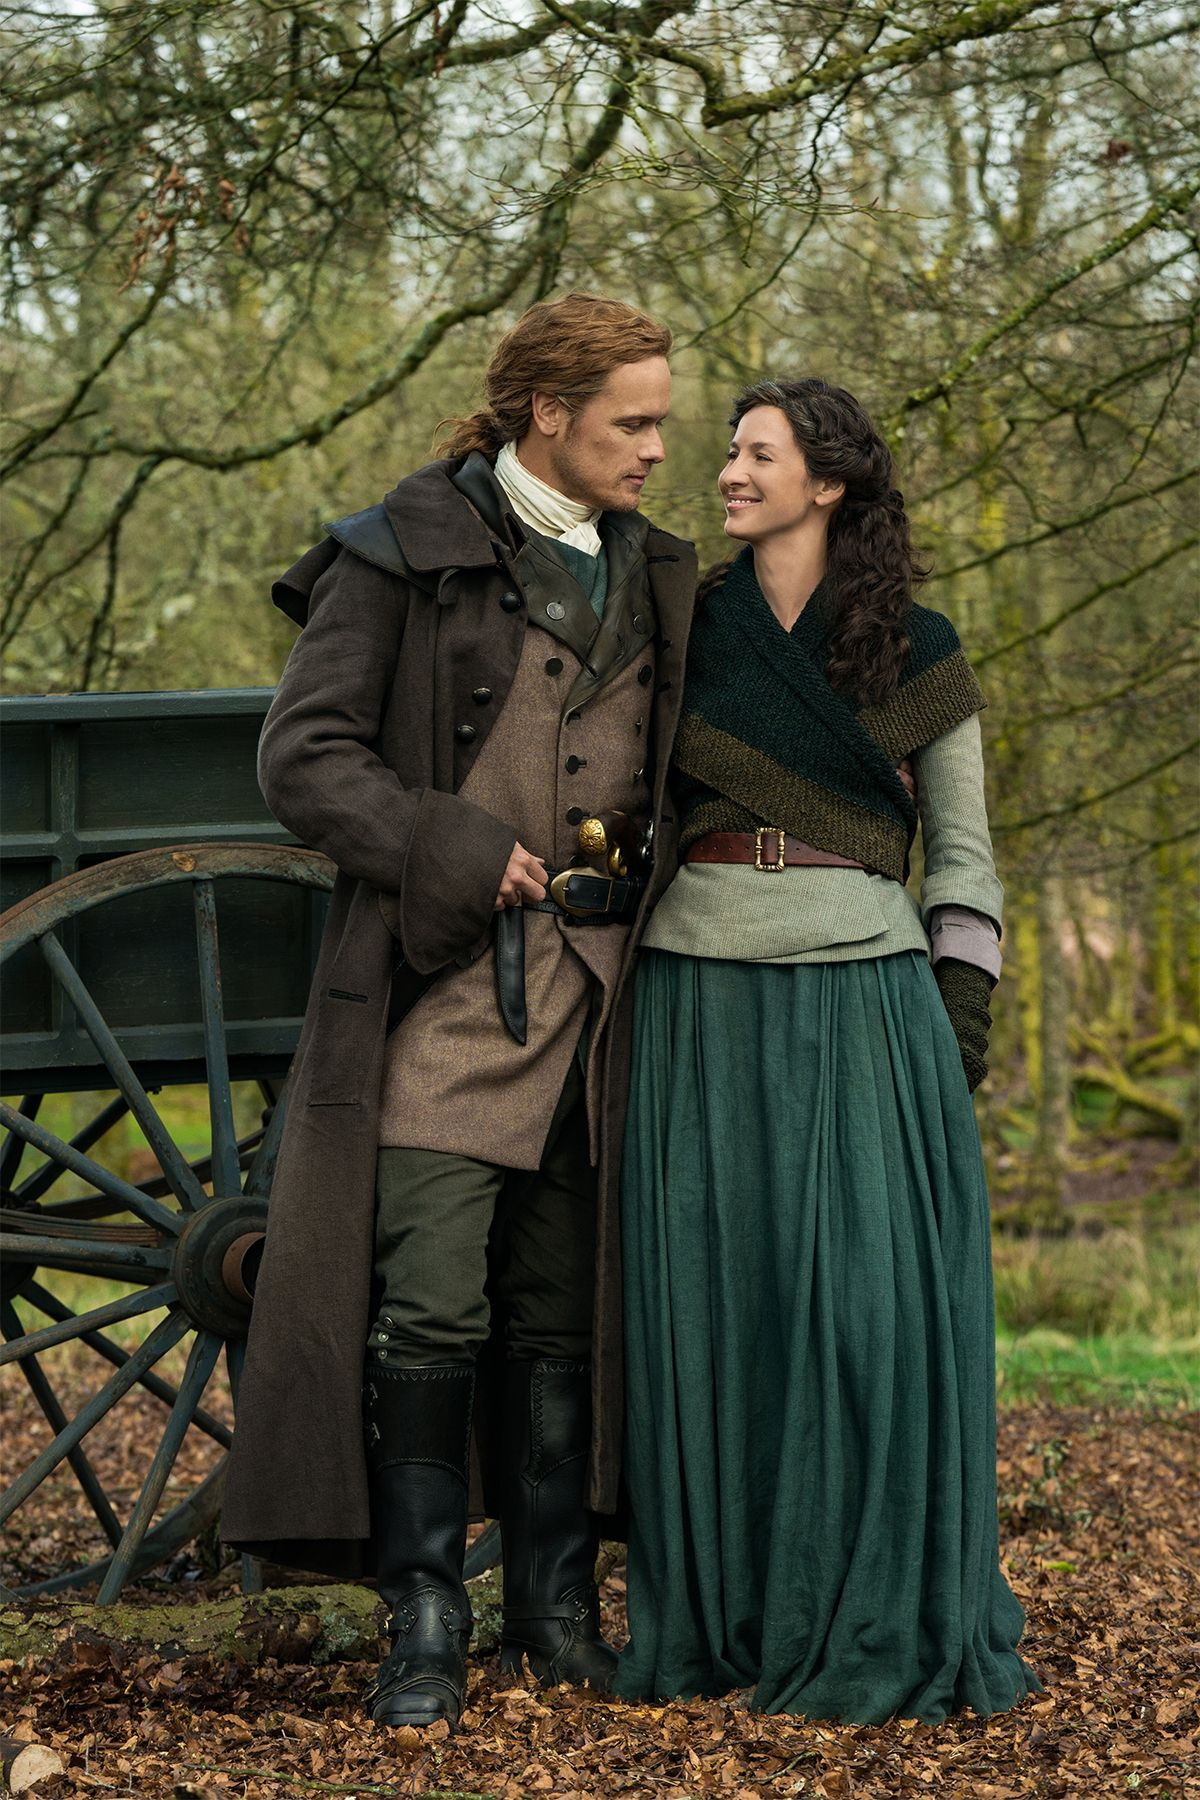 Outlander Stars Sam Heughan and Caitriona Balfe Preview What's to Come in Season 5